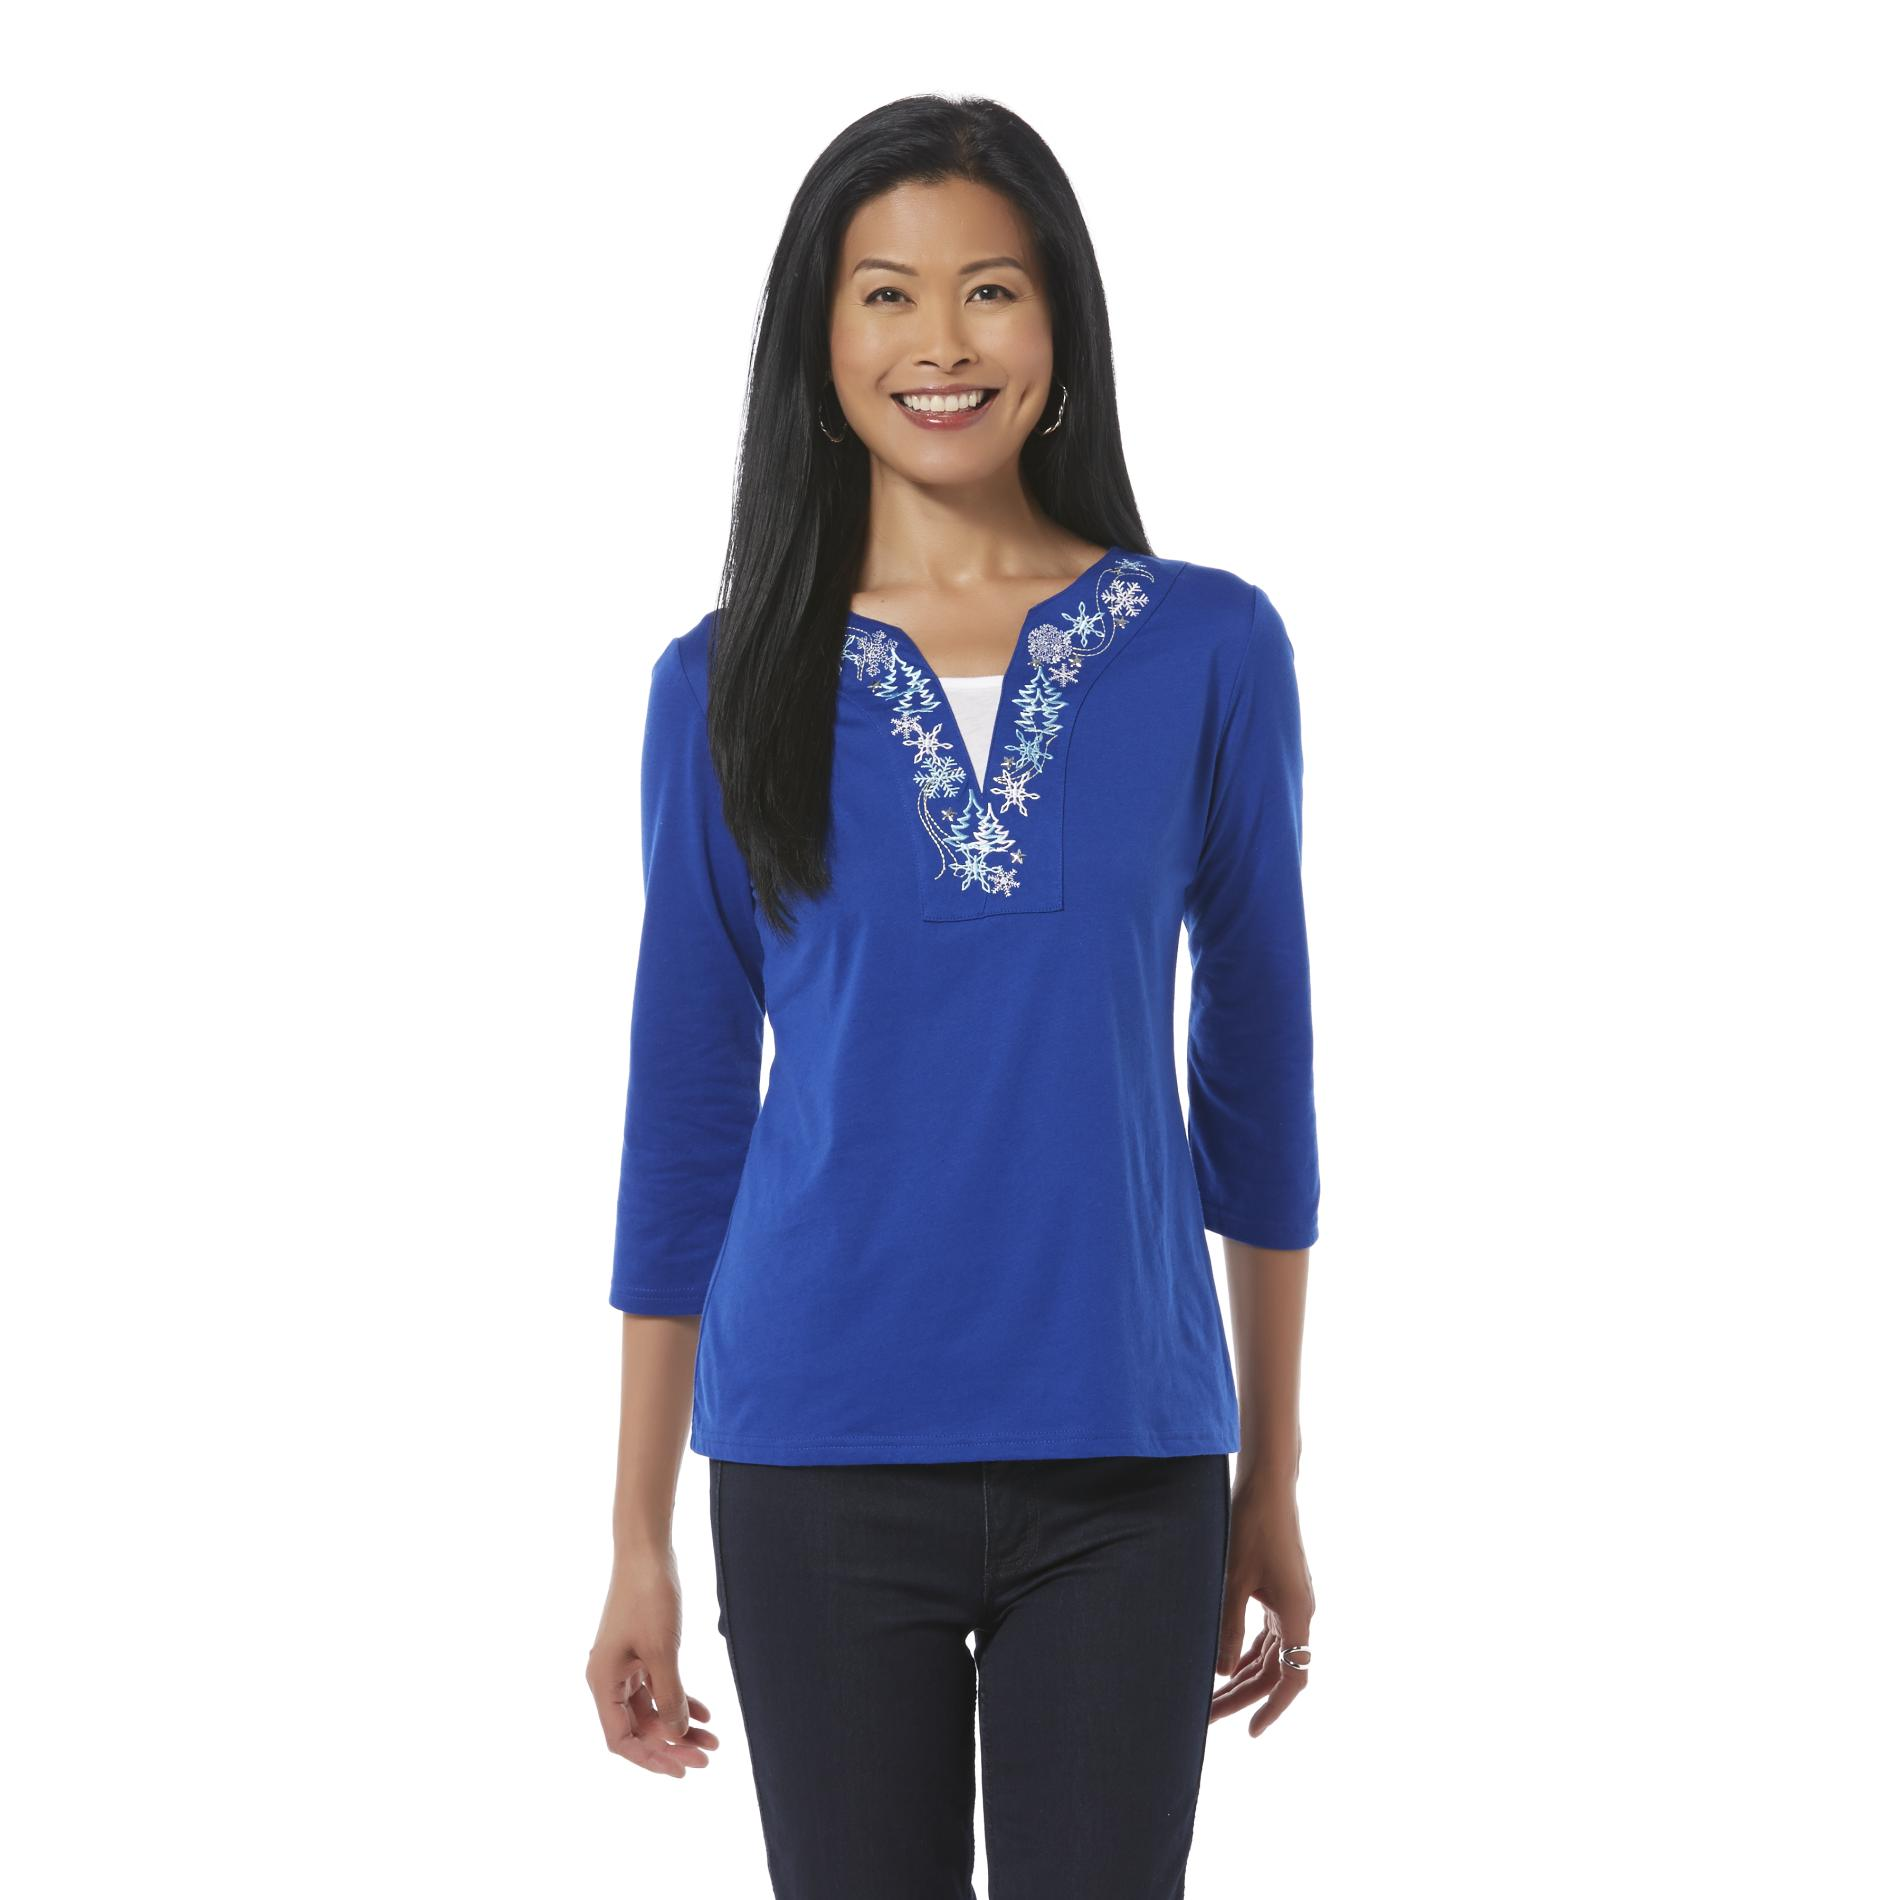 Holiday Editions Women's Embellished T-Shirt - Snowflake